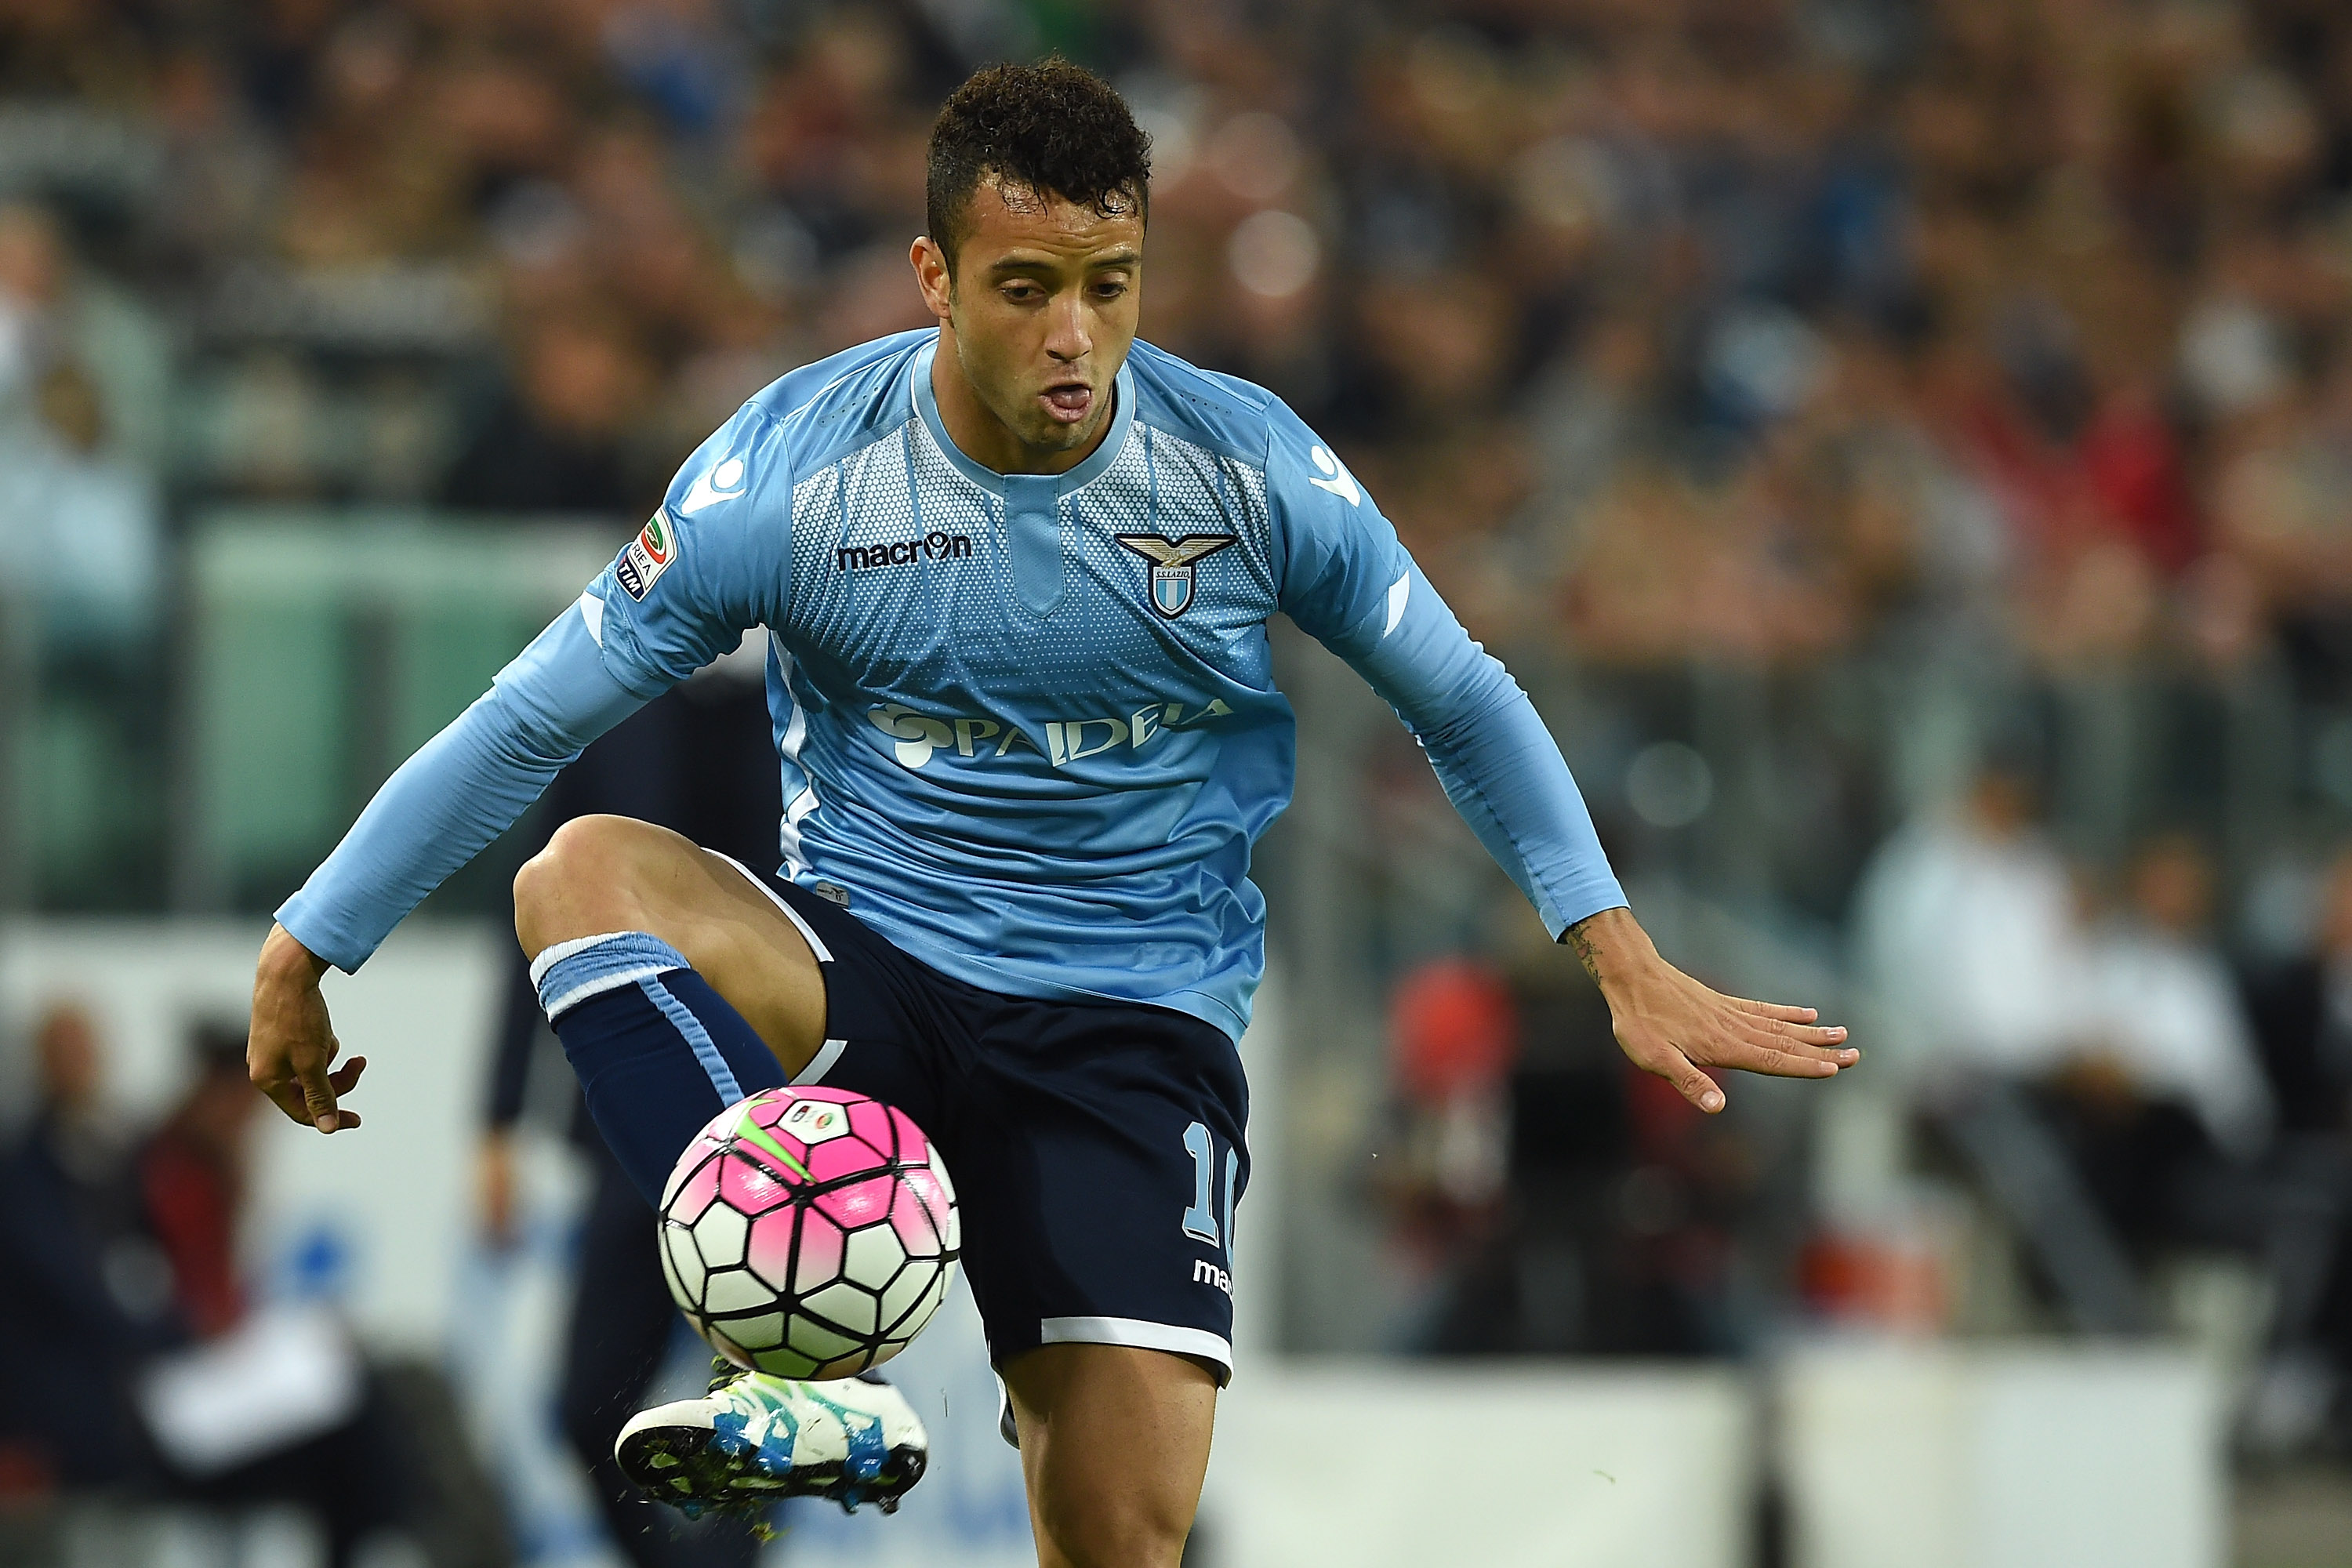 Manchester United transfer target Felipe Anderson unsure why move failed